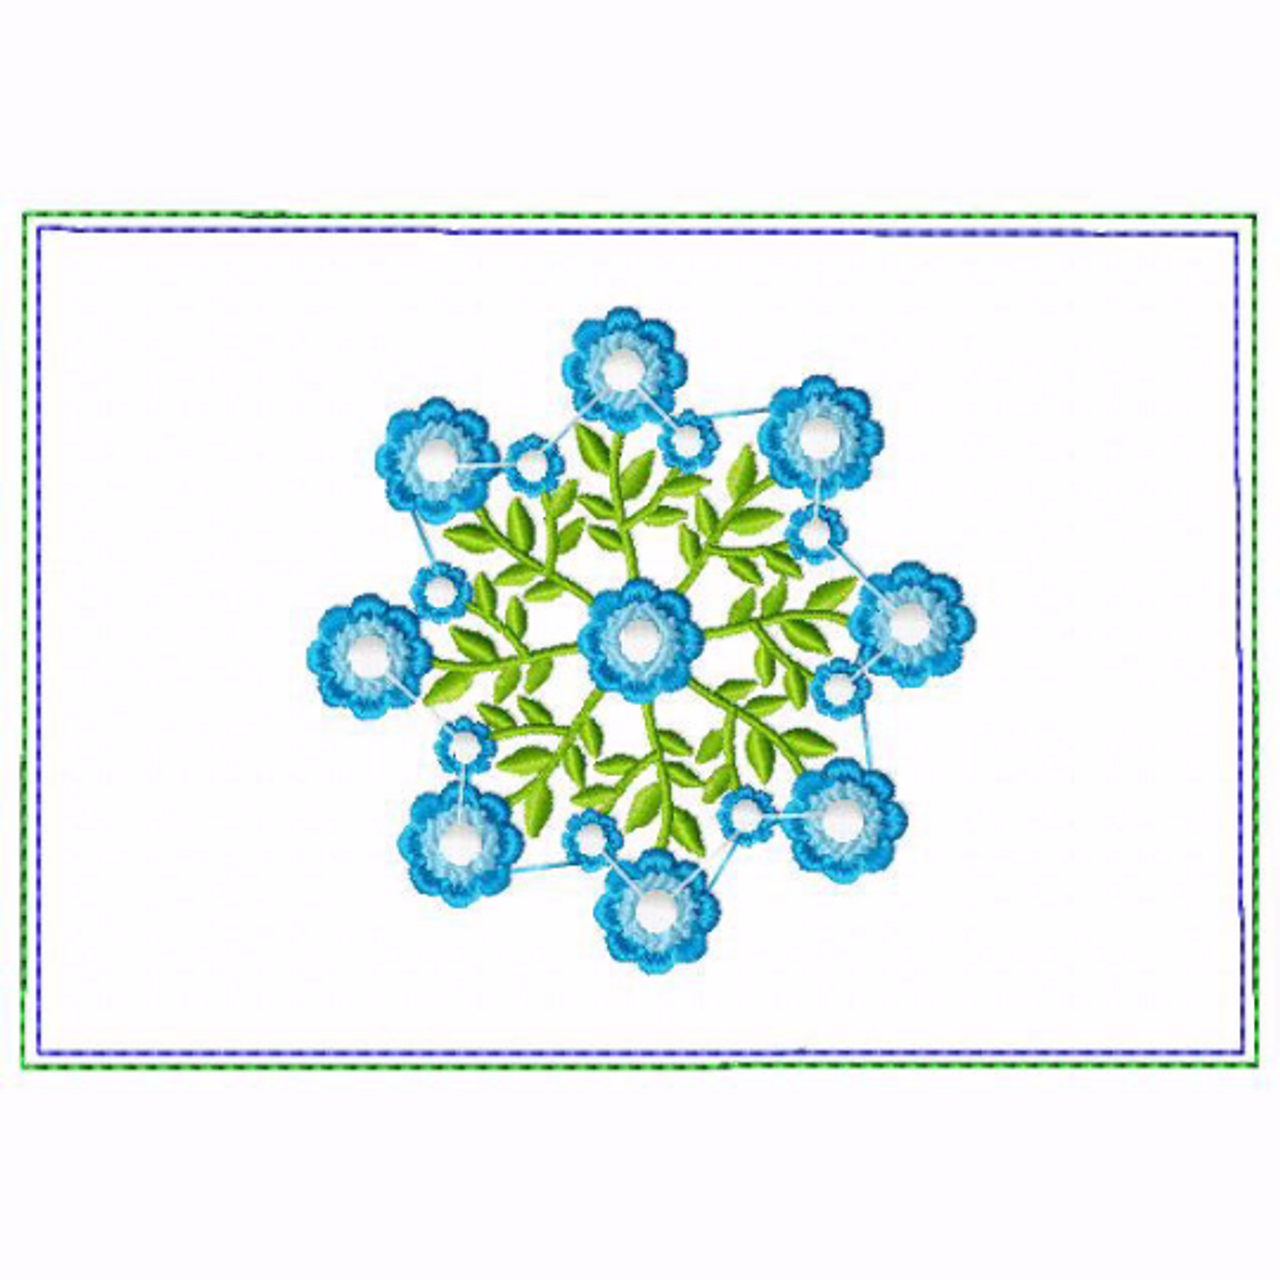 In The Hoop Machine Embroidery Design Circle Of Flower Small Money